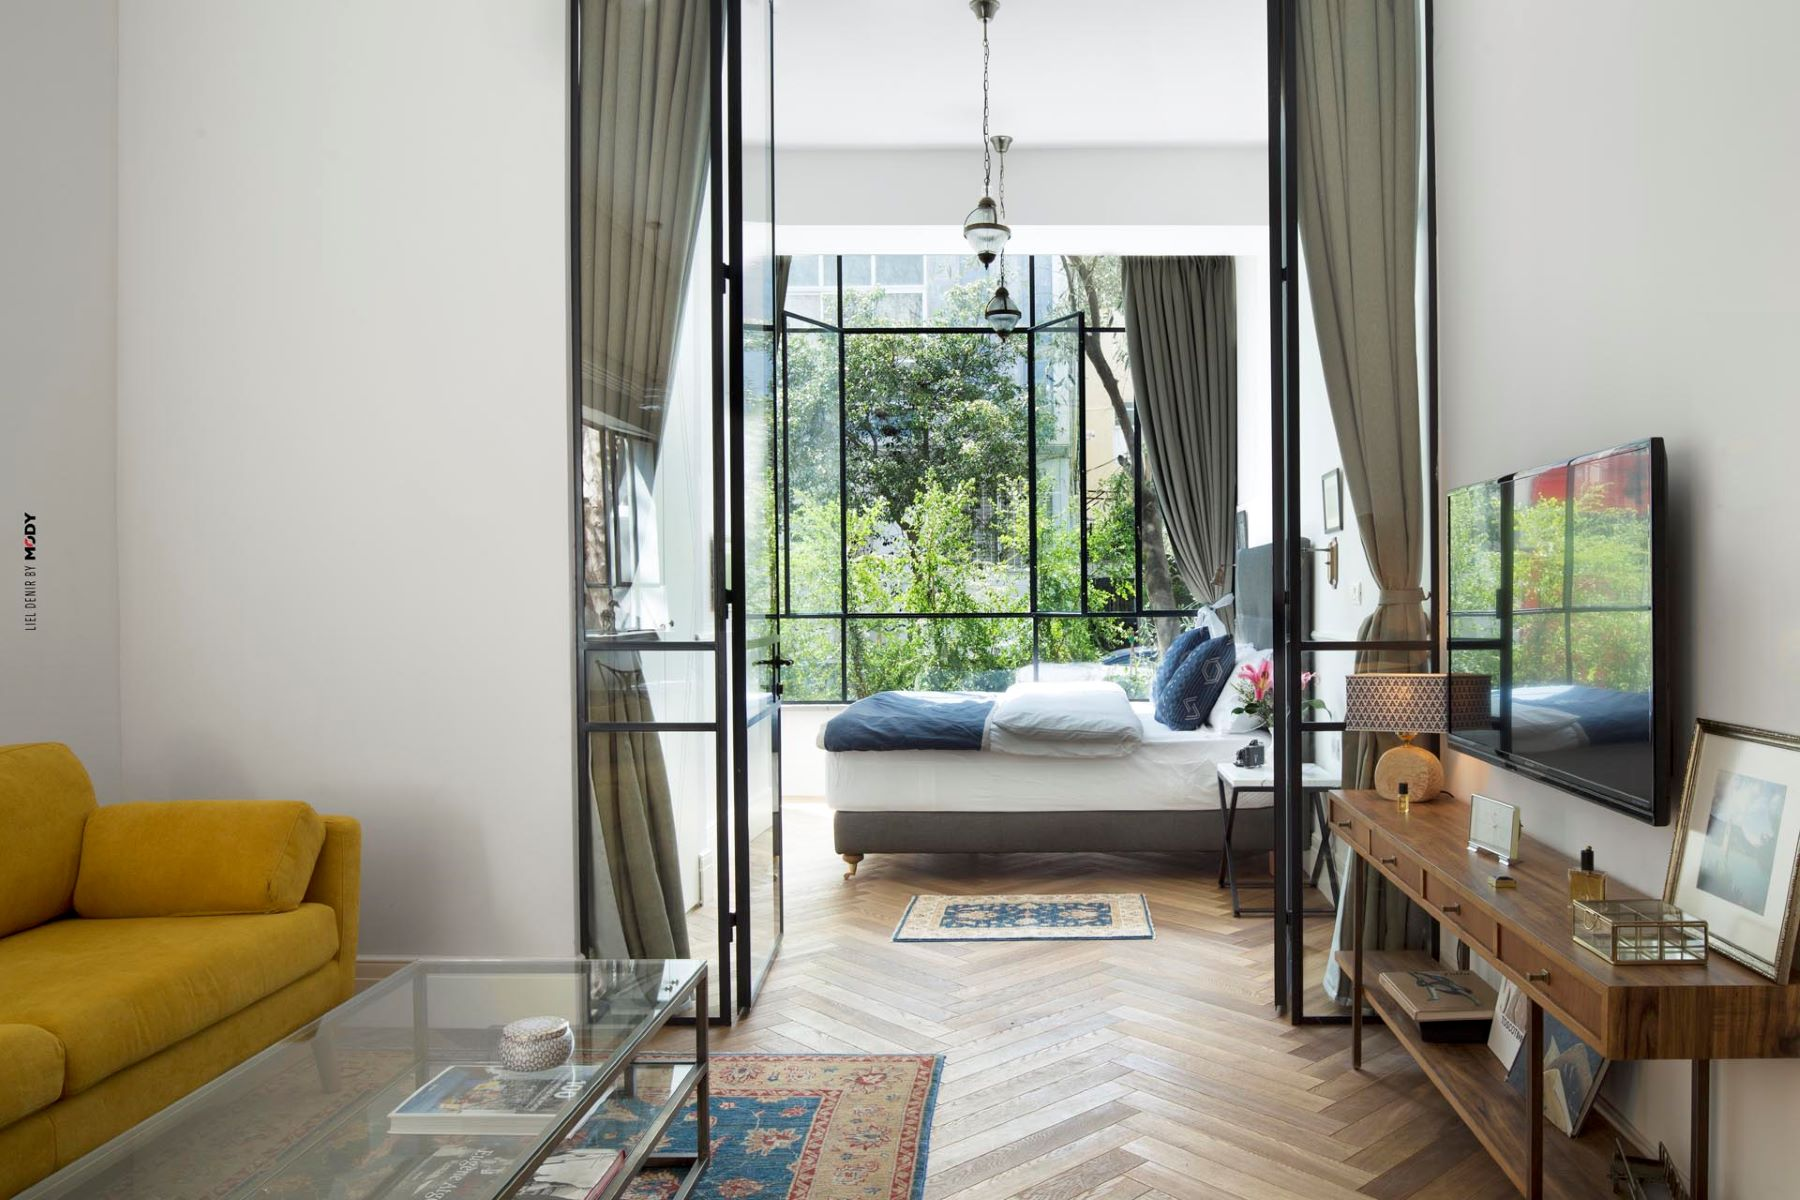 Additional photo for property listing at Elegant apartment in the heart of Tel Aviv Tel Aviv, Israel Israel